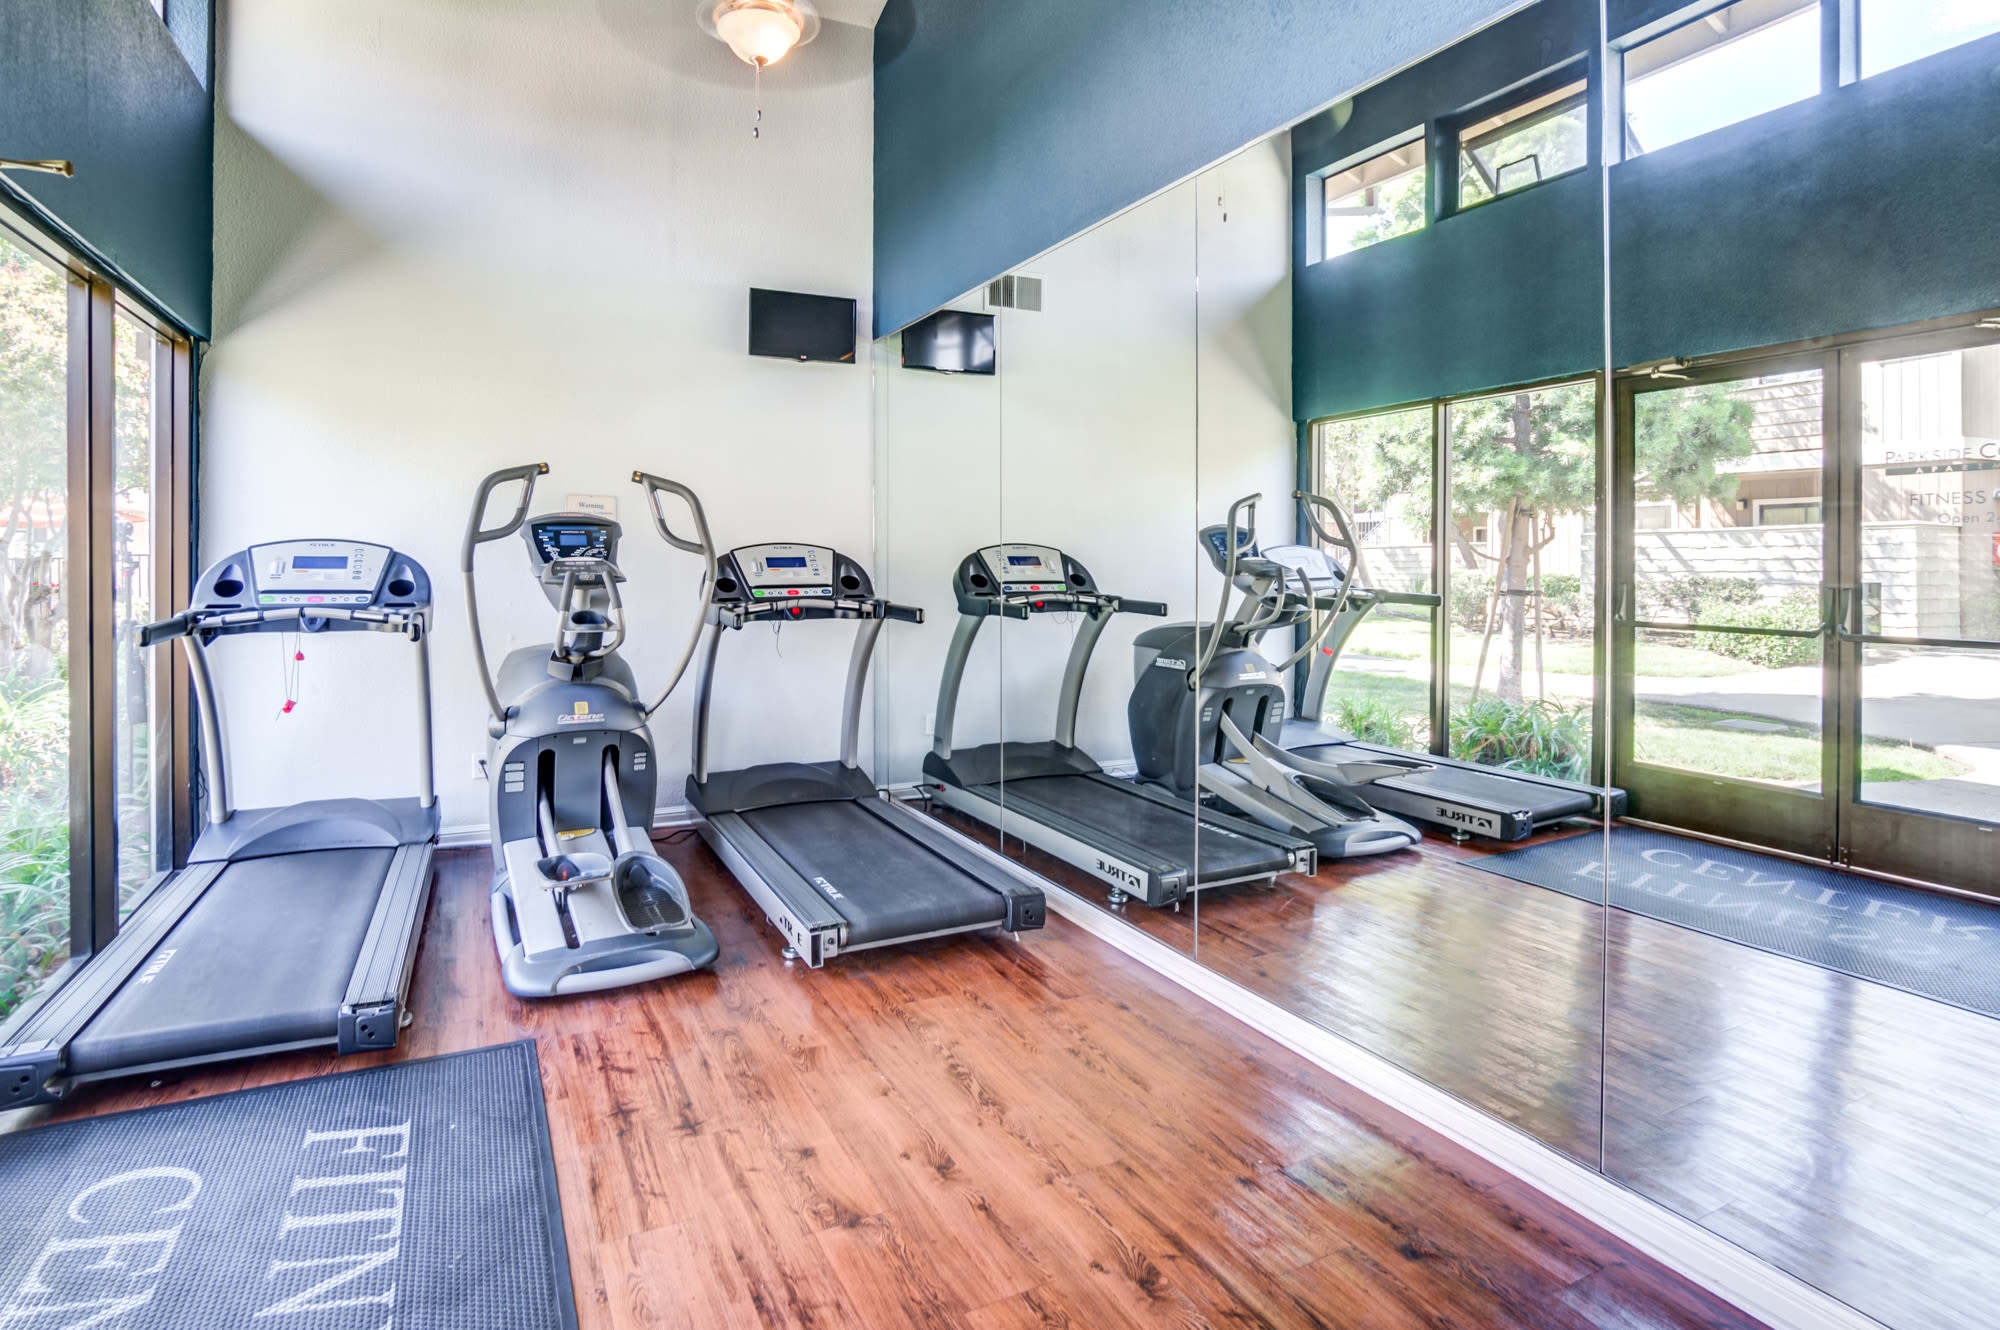 Fitness Center At Parkside Commons Apartments In San Leandro, CA